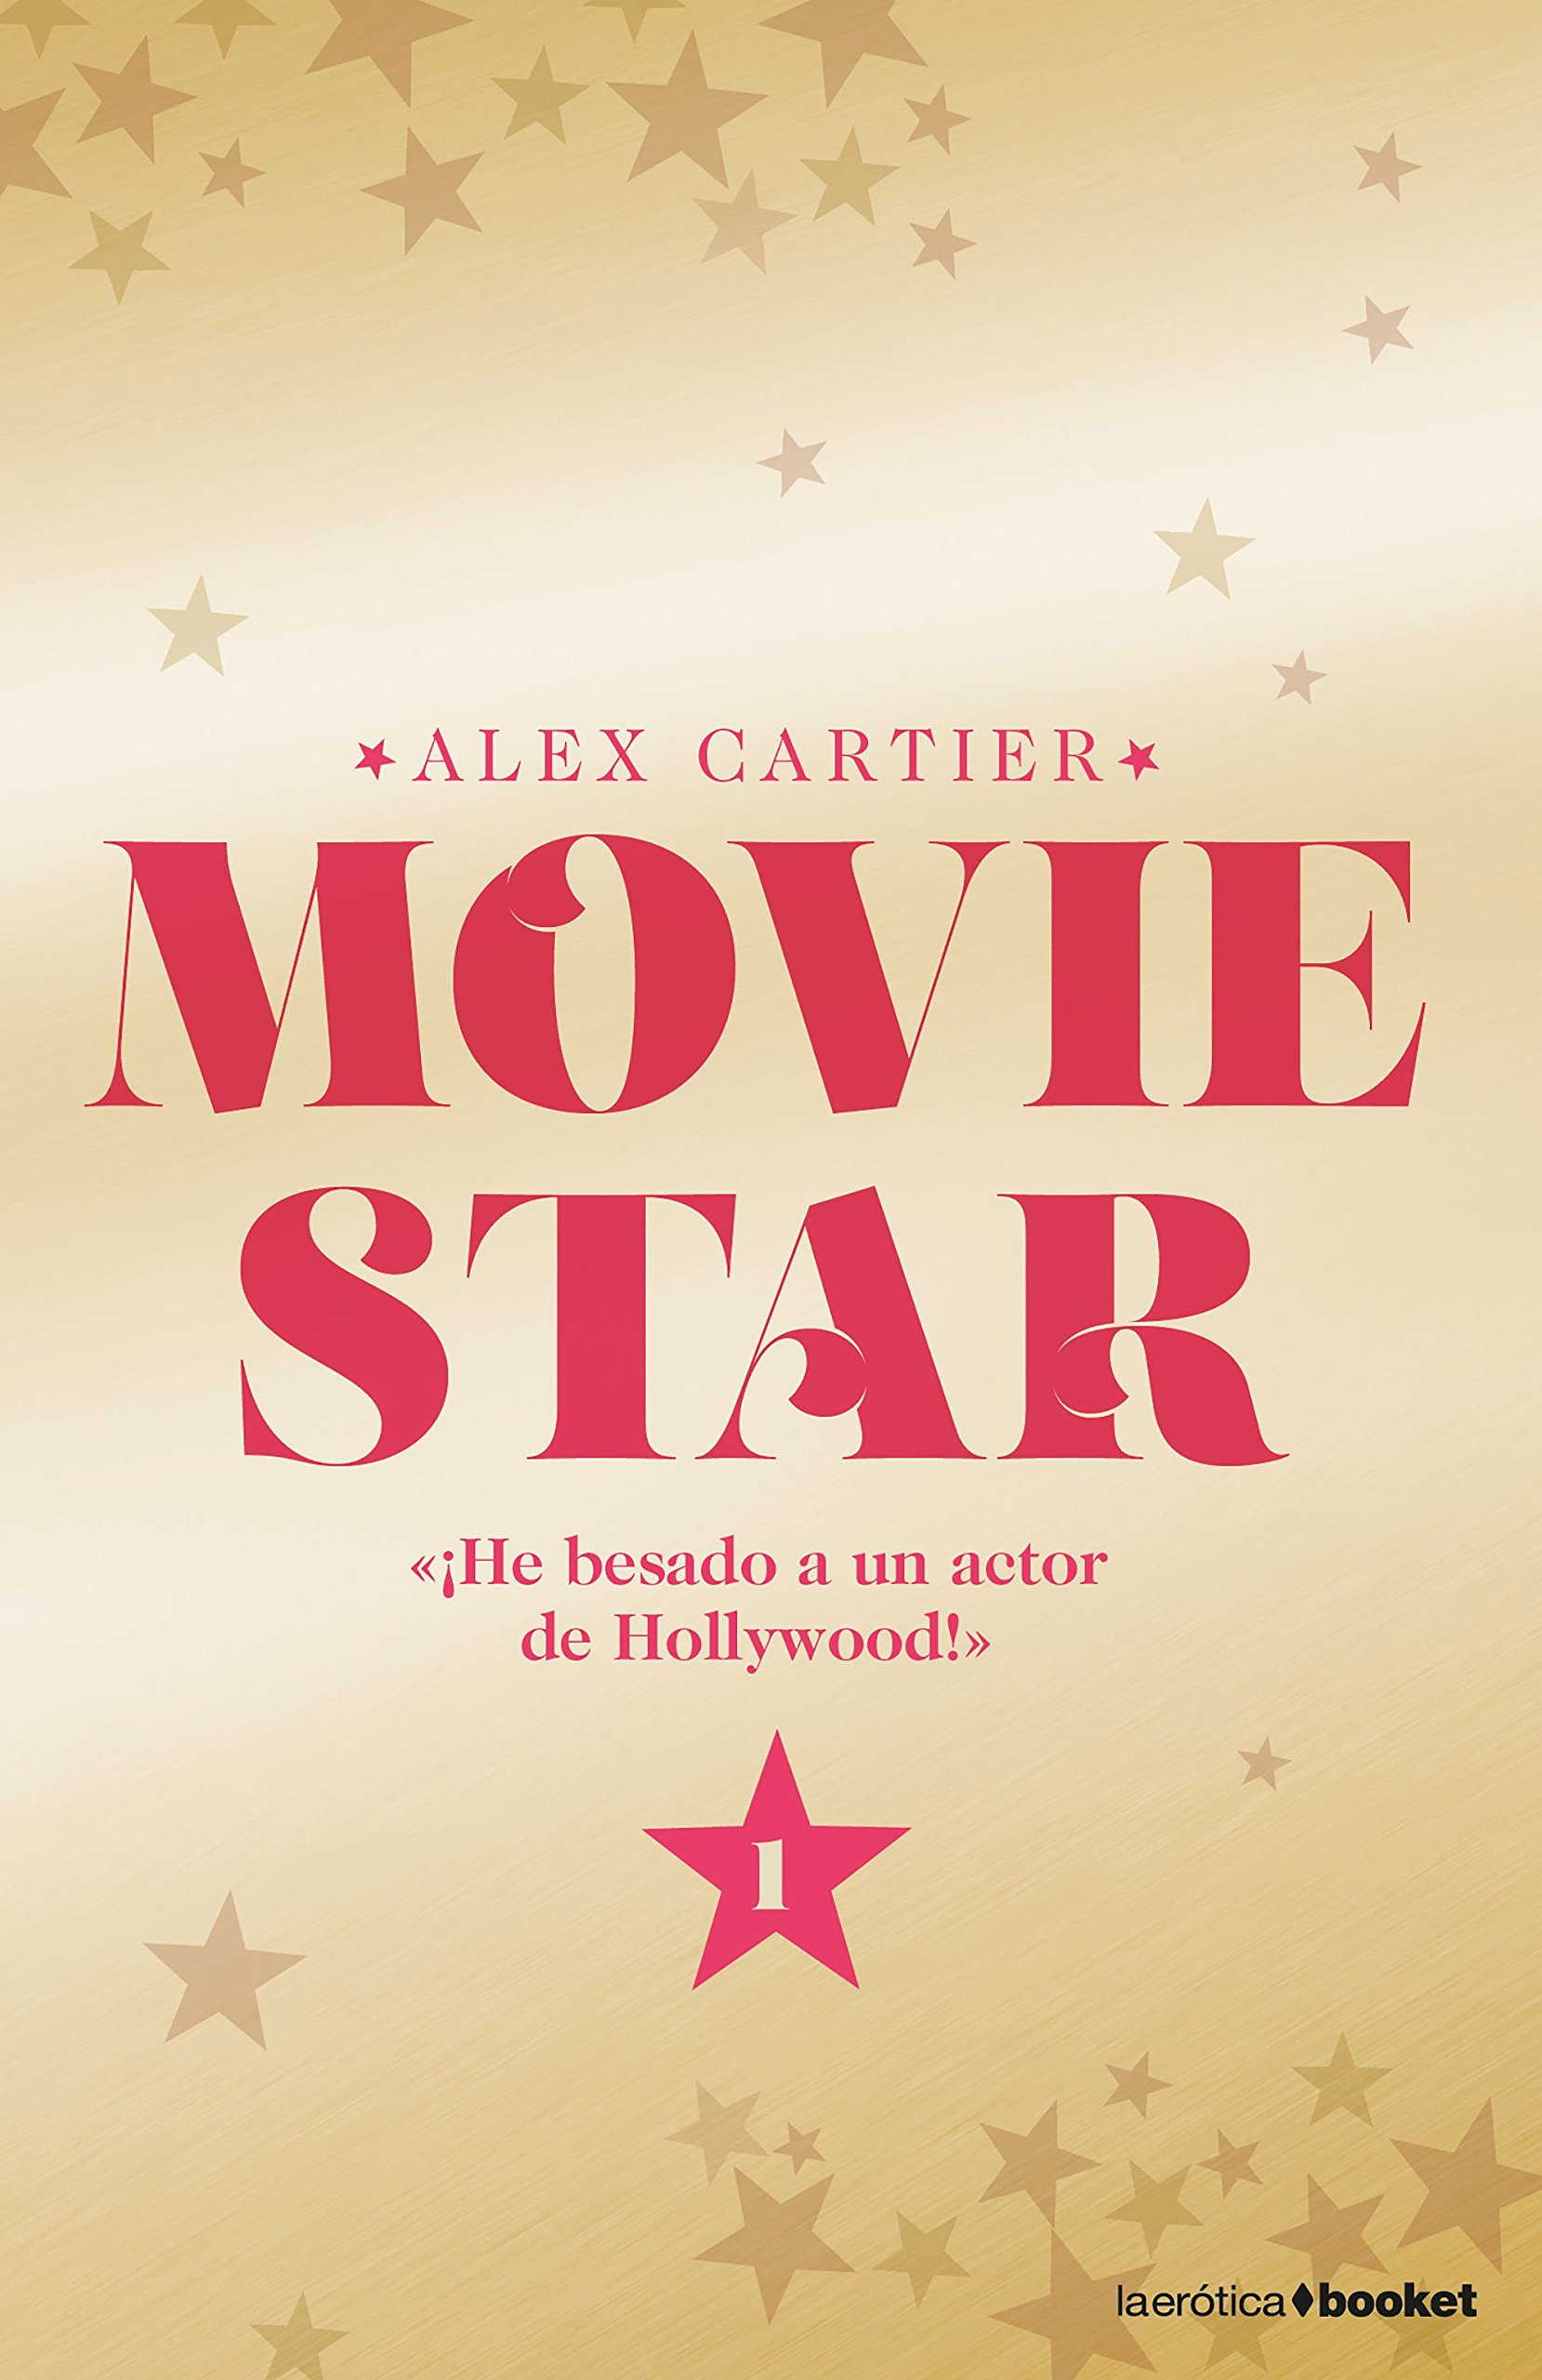 Portada libro - Movie Star 1